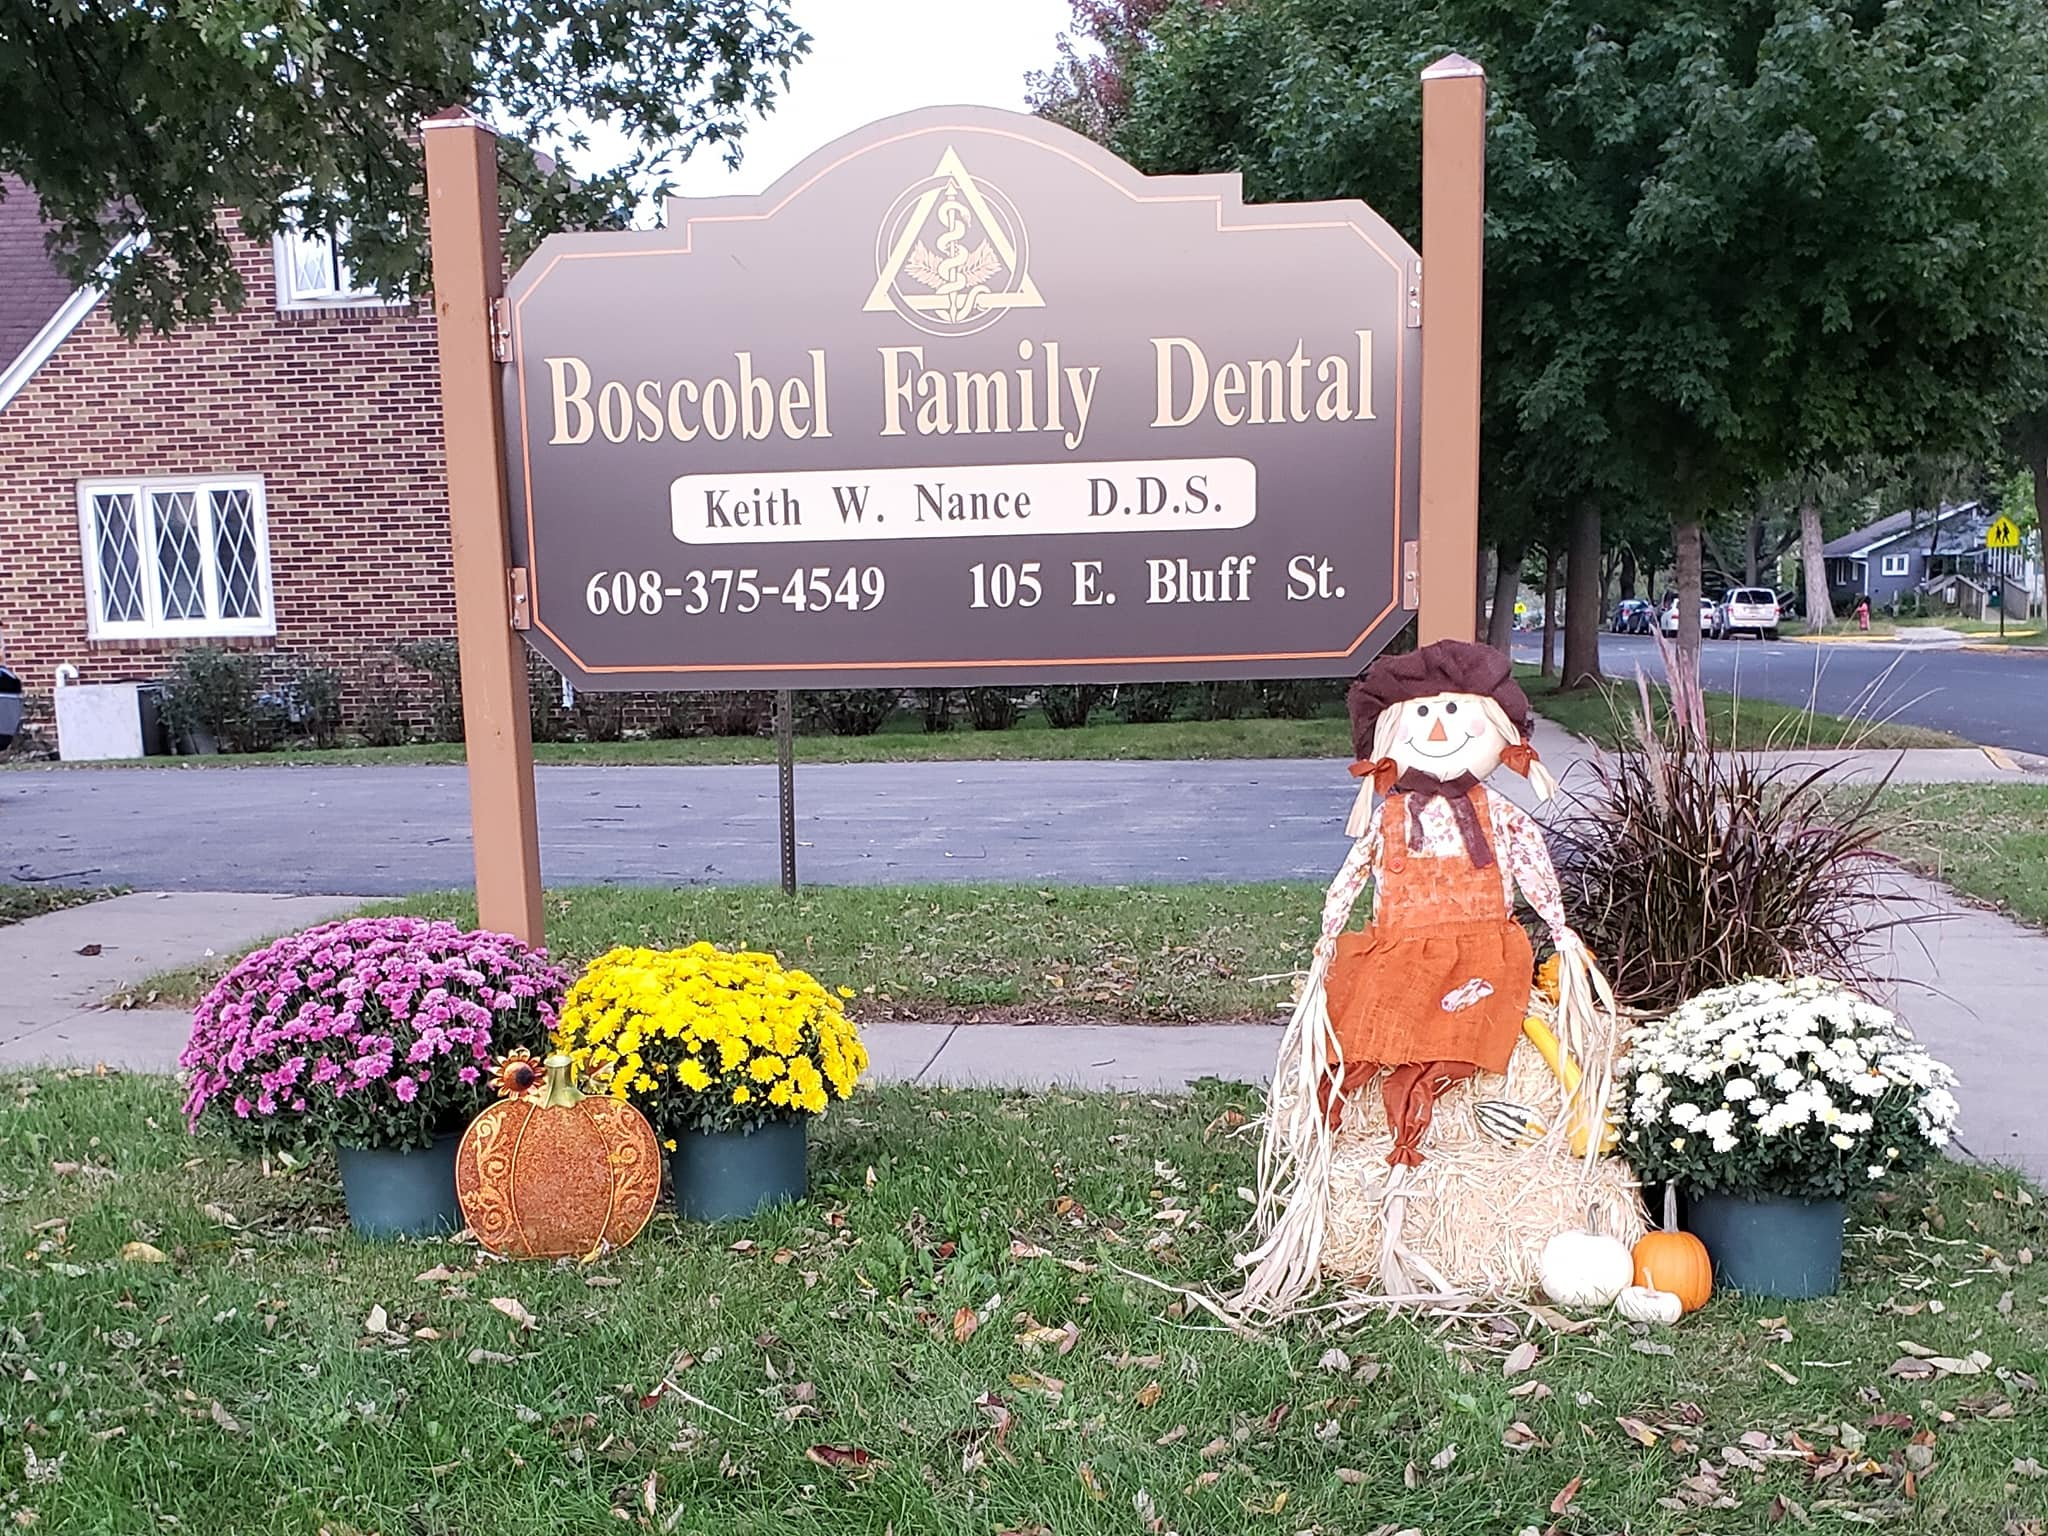 Boscobel Family Dental sign